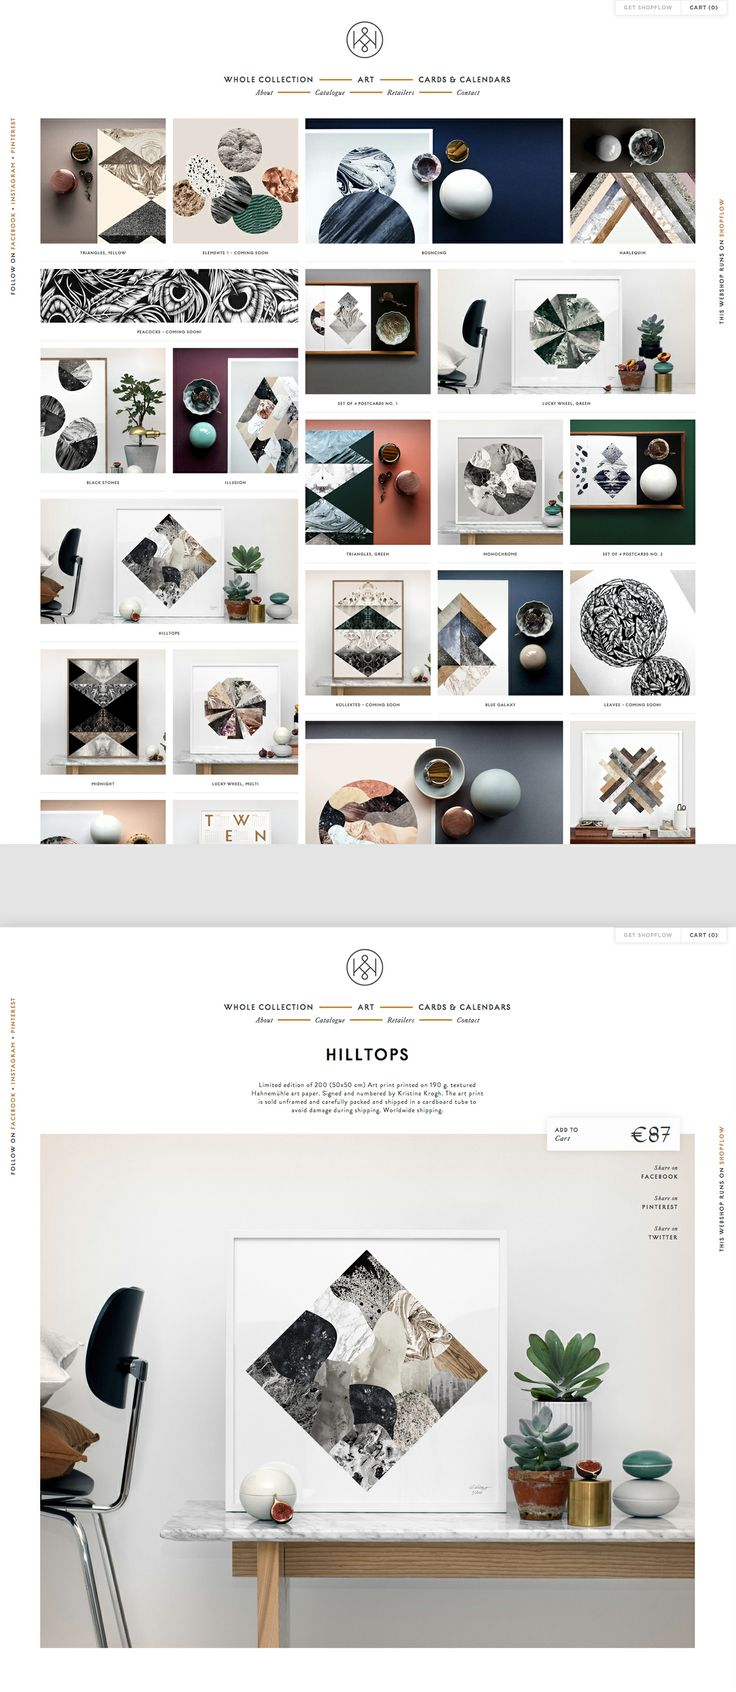 Kristina Krogh Studio: www.kkrogh.dk Created in ShopFlow